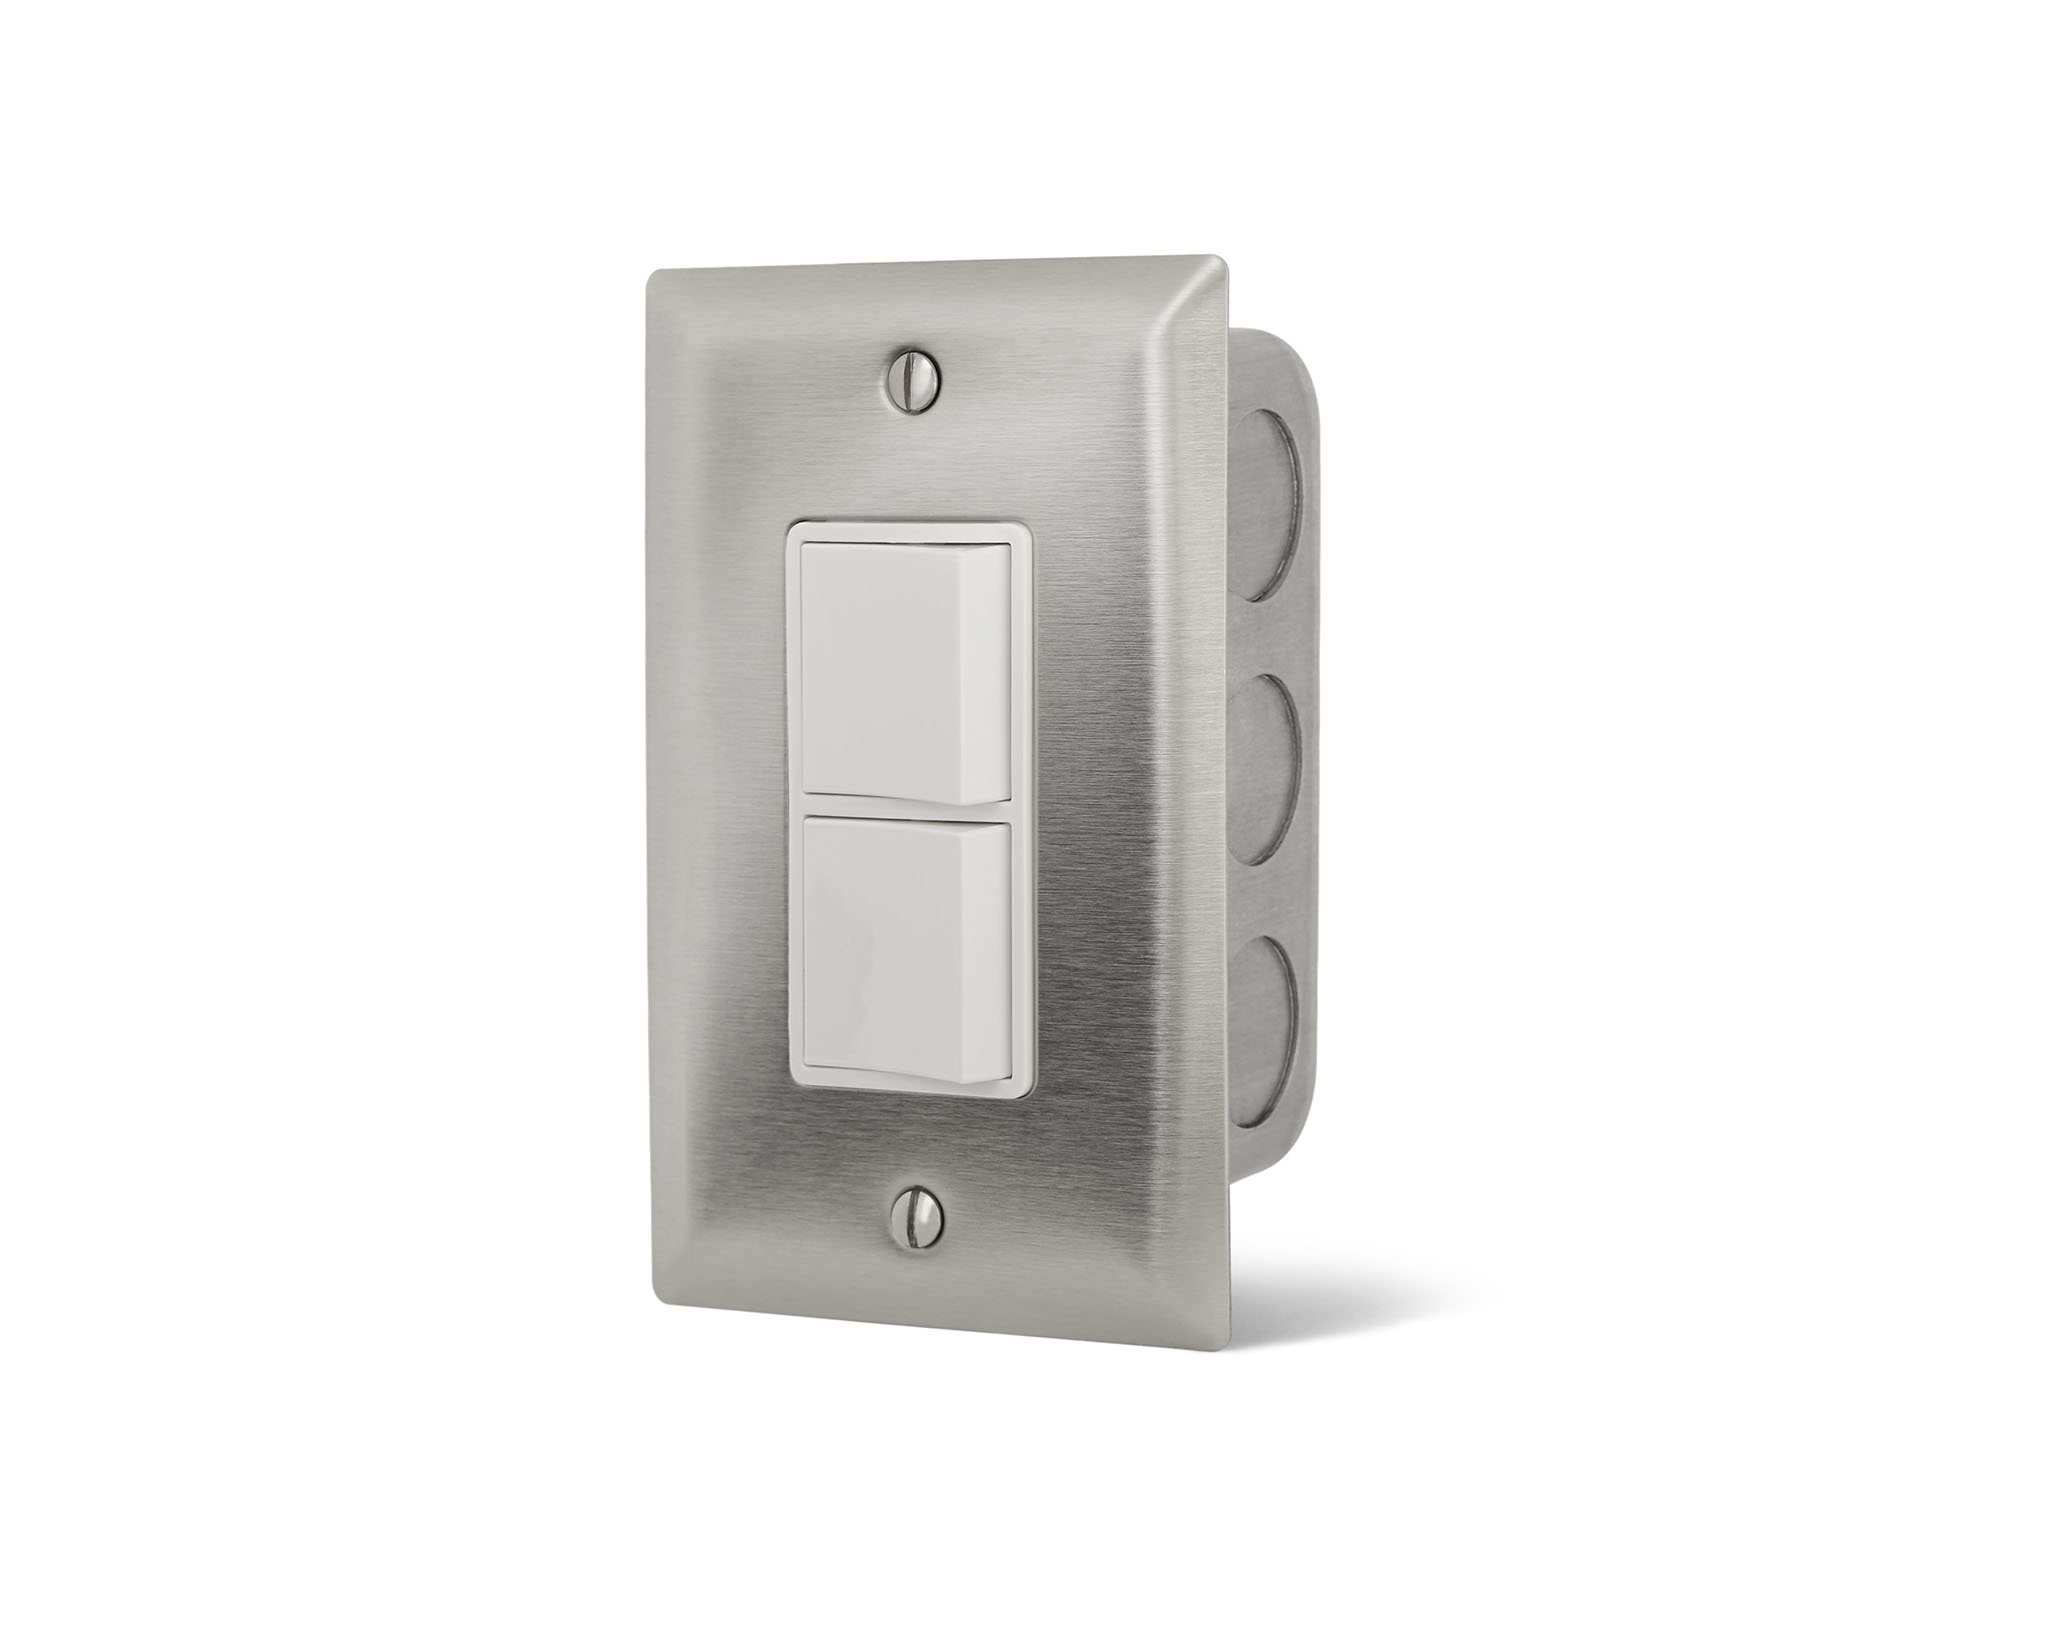 infrared electric heater value controls duplex stack switches in wall for indoor or protected outdoor areas